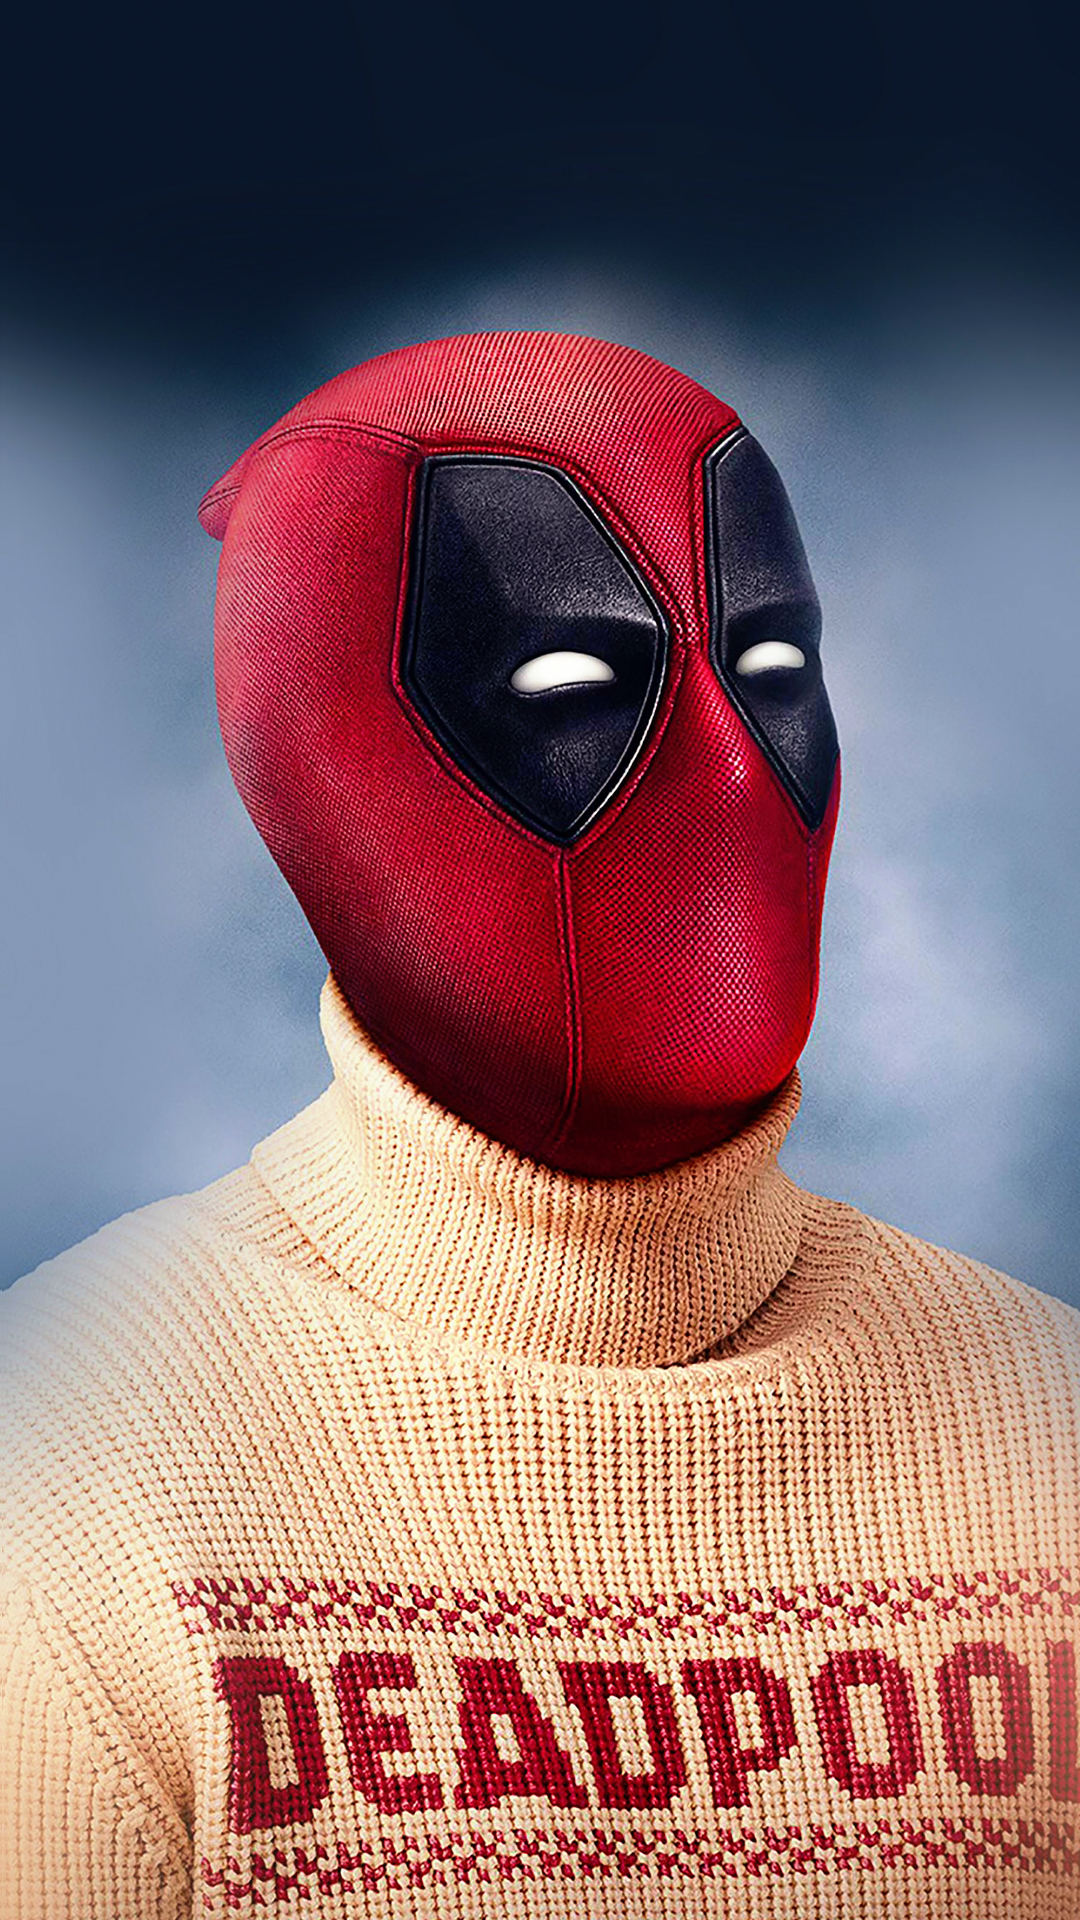 Free Hd Good Deadpool Phone Wallpaper 1054